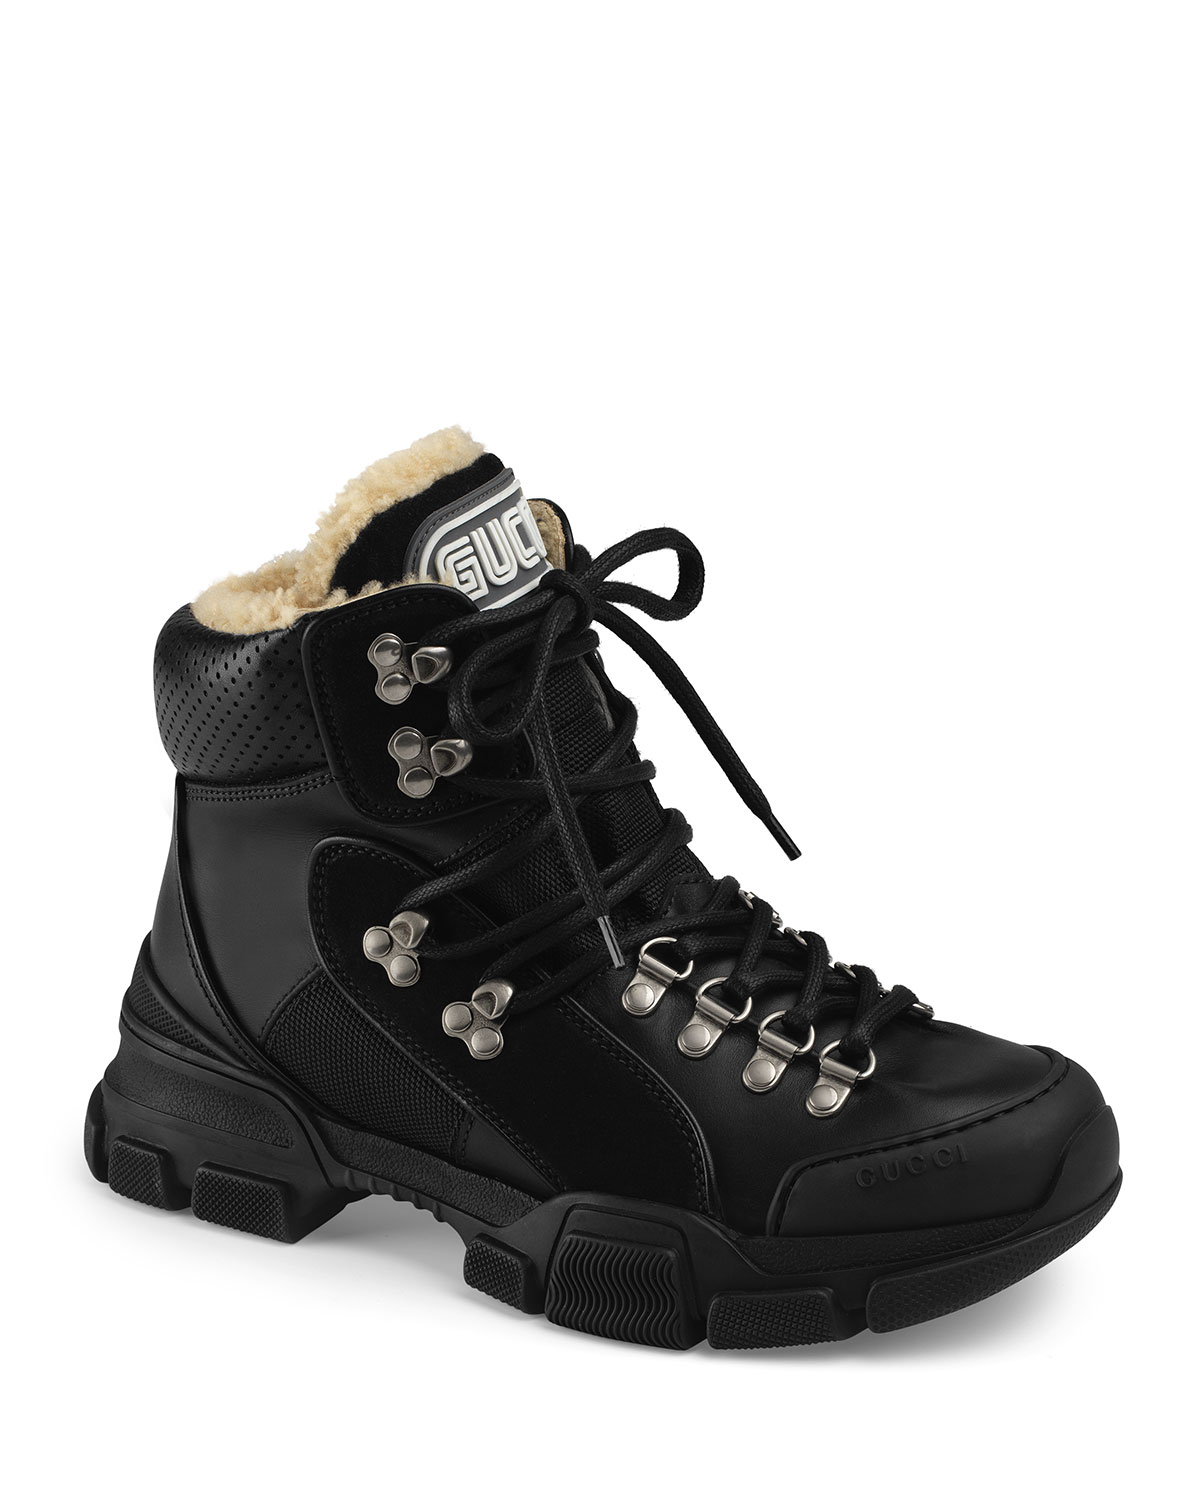 7478ce42f06 Gucci Flashtrek Shearling-Lined Hiker Boots